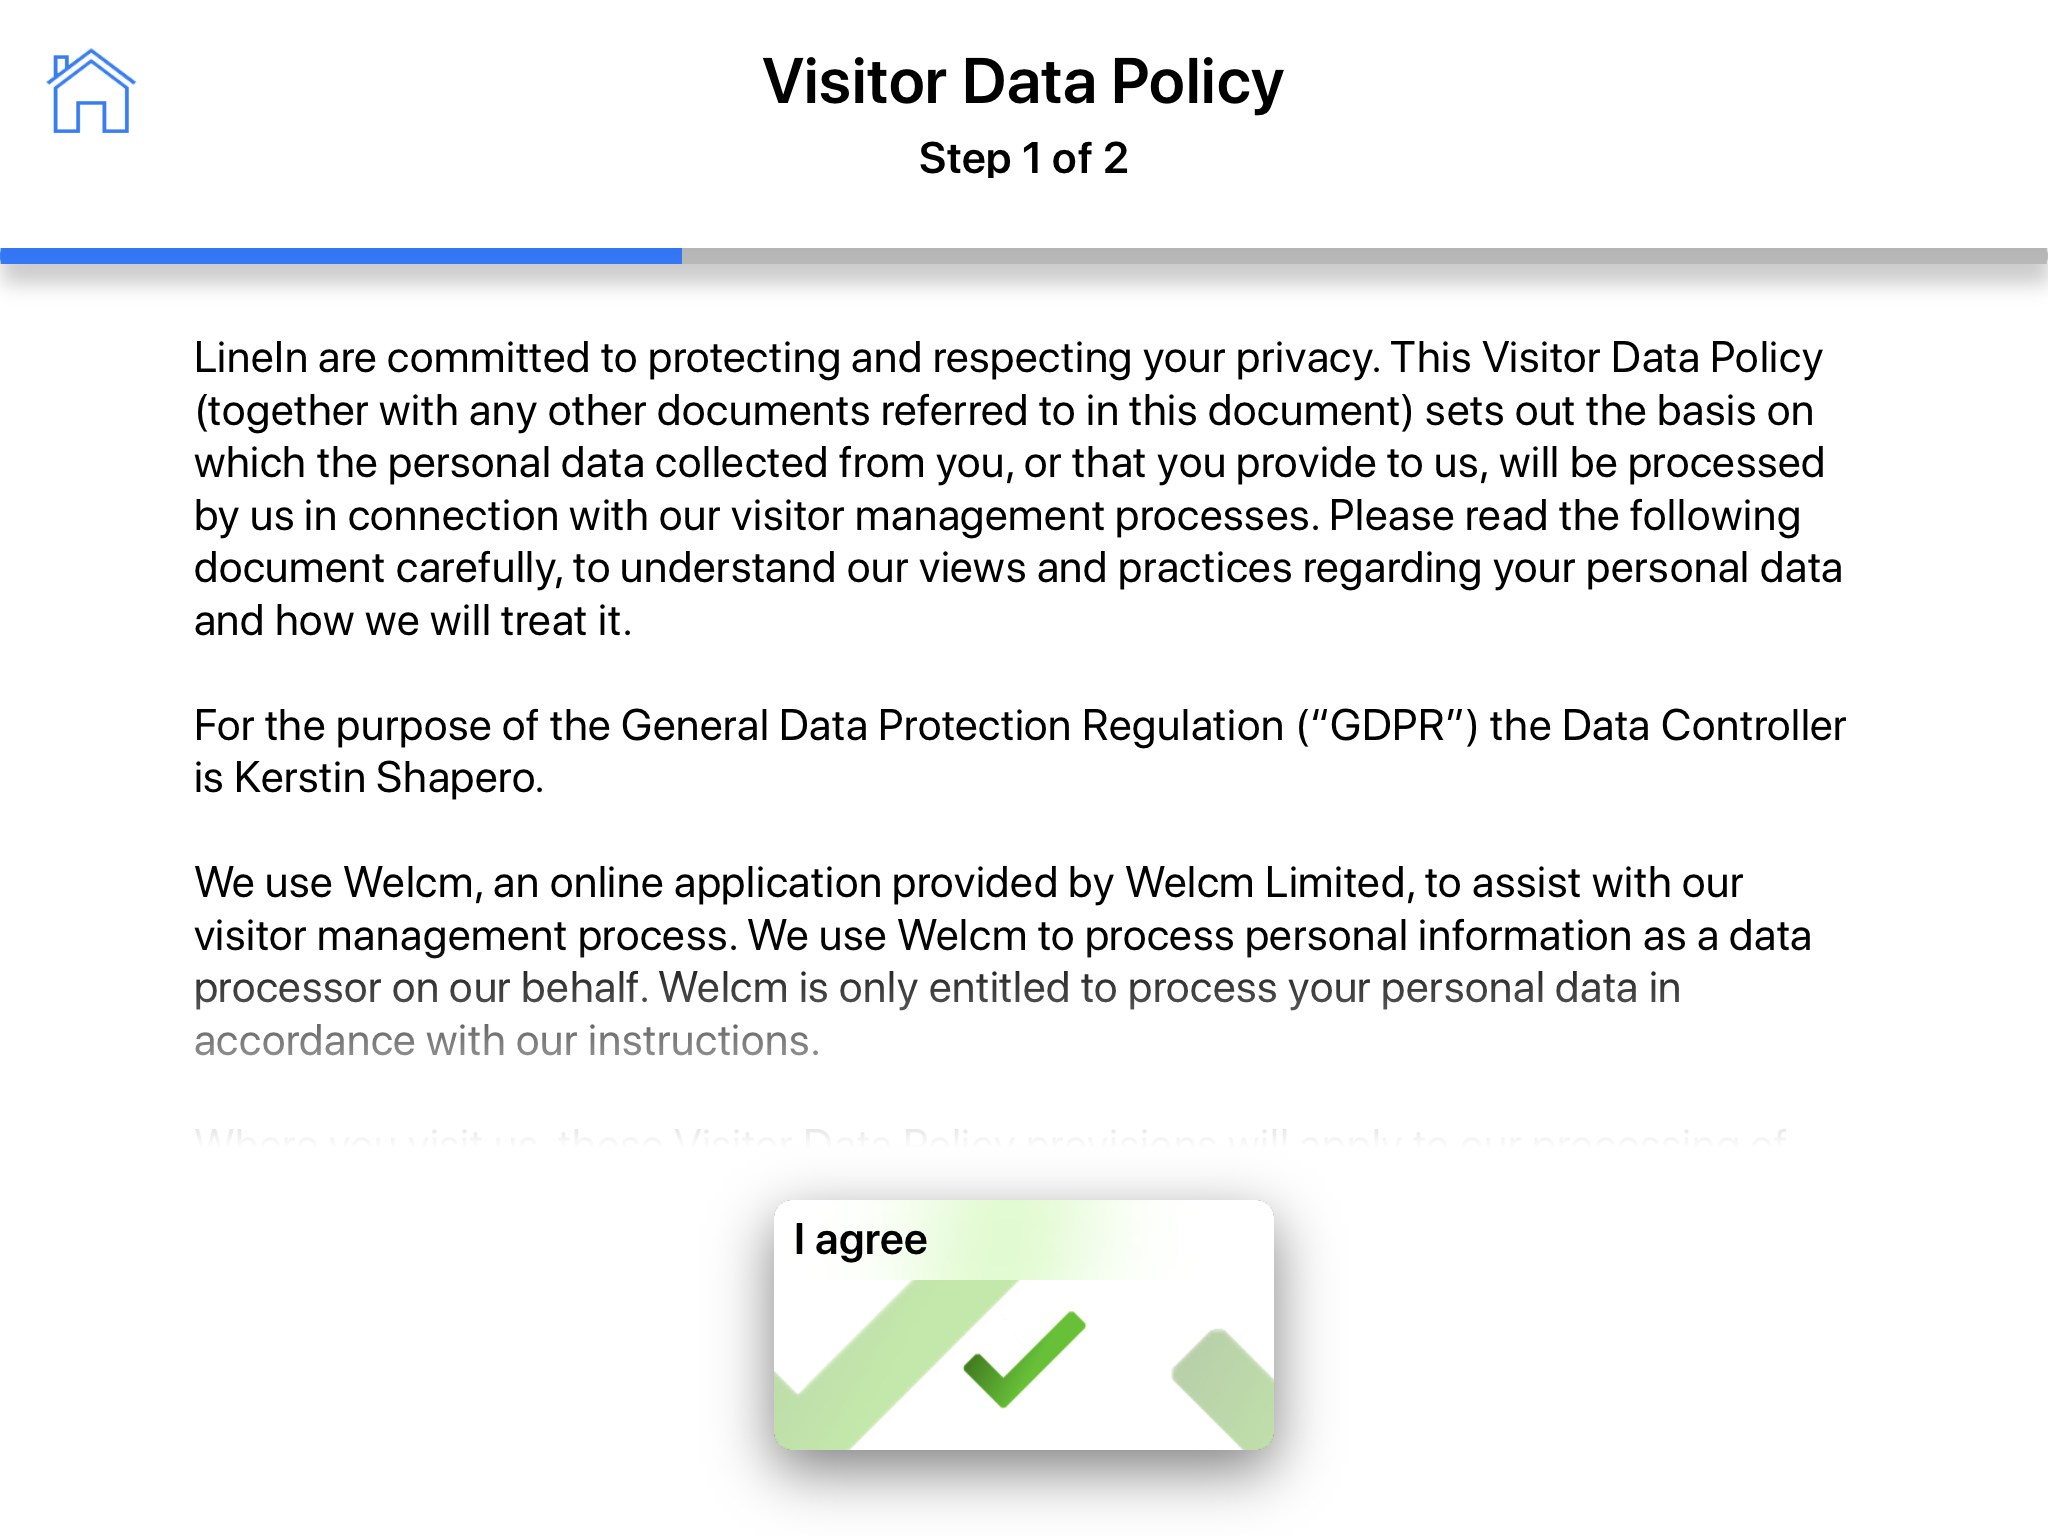 Visitor data policy